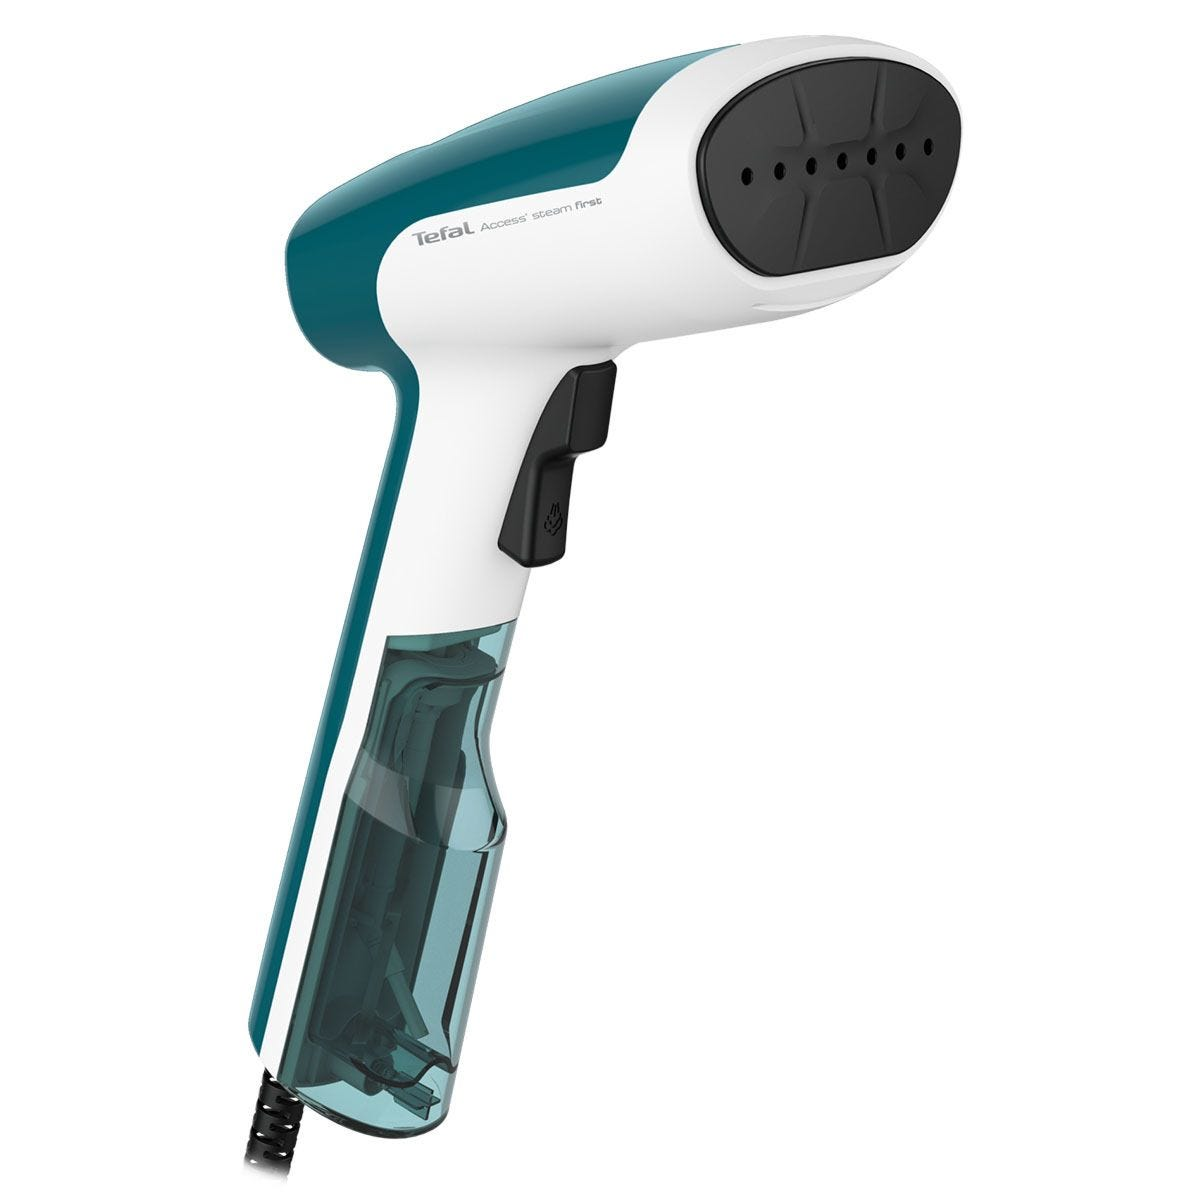 Tefal Access Steam First DT6131 Handheld Garment Steamer - Blue and White